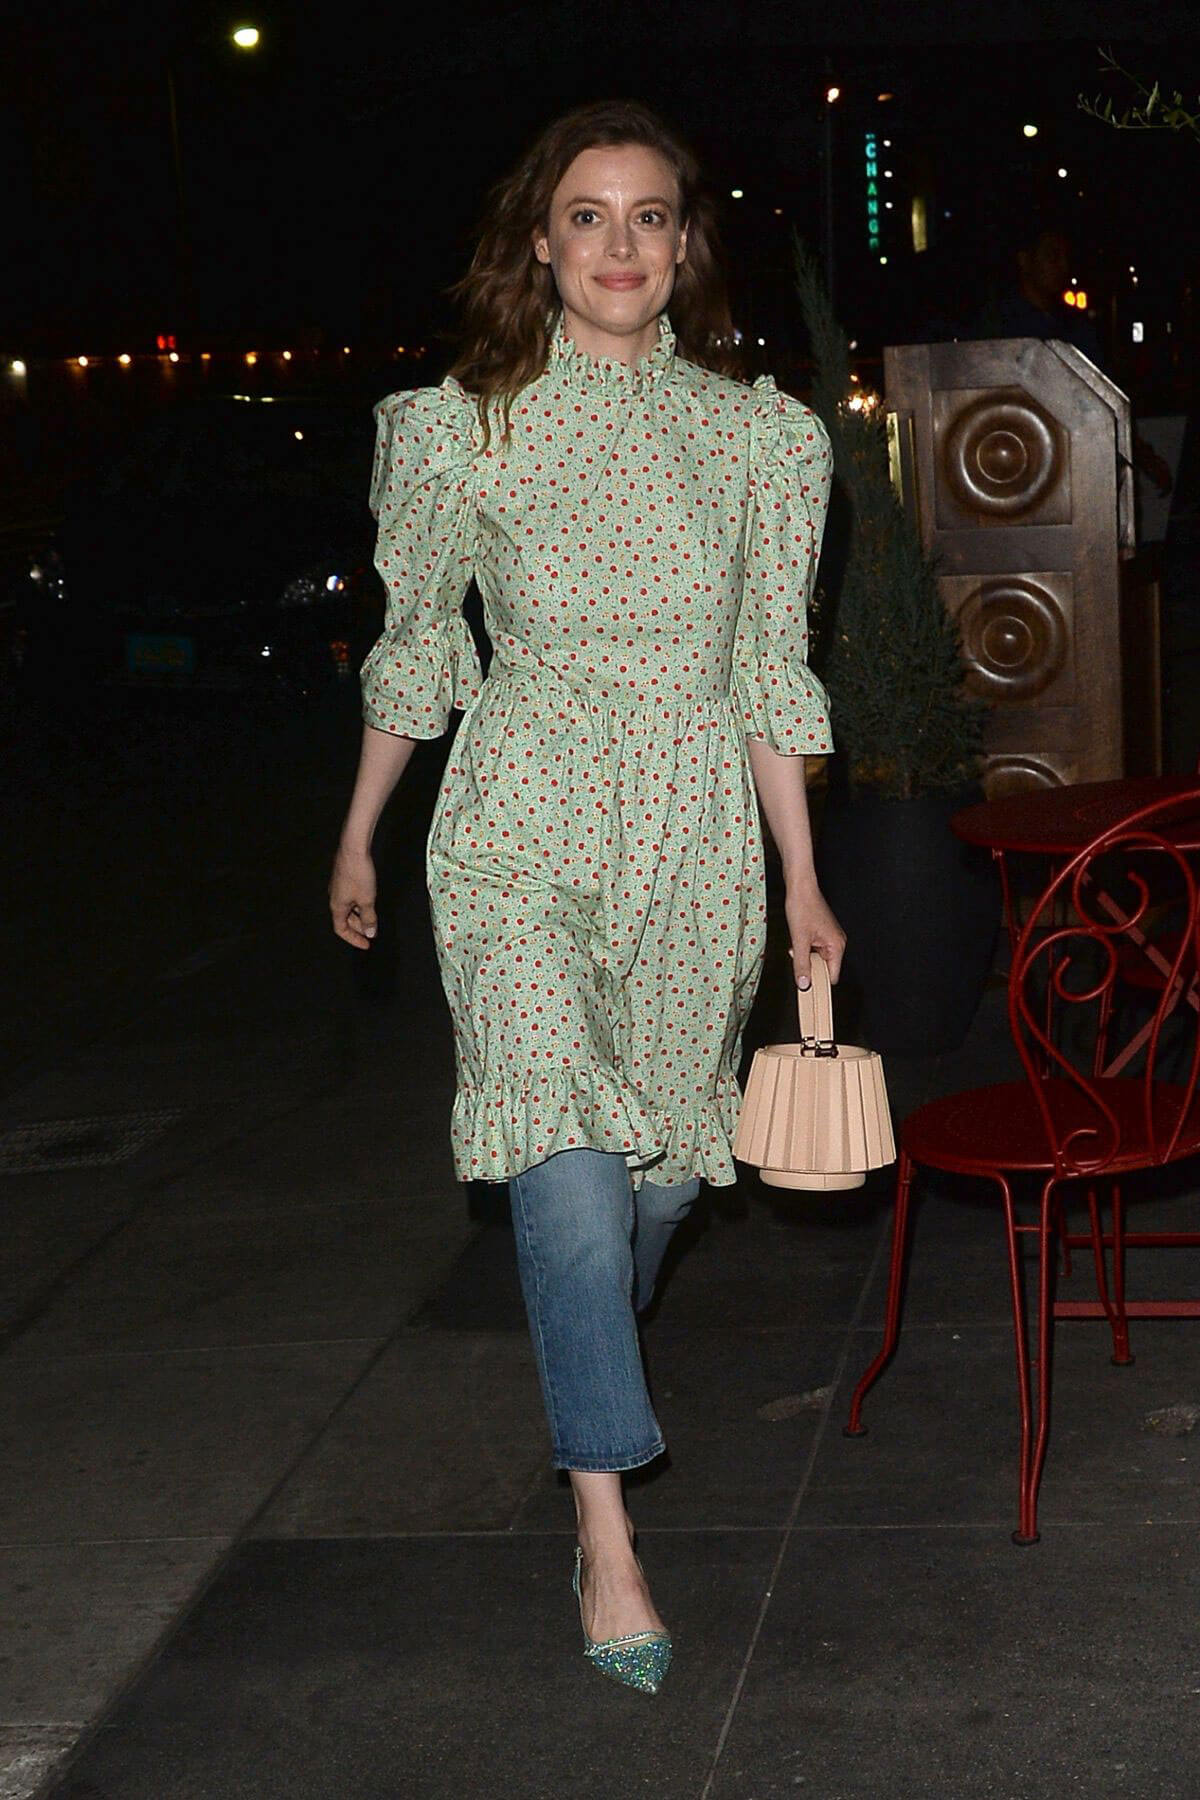 Gillian Jacobs Stills Night Out - Los Angeles 2018/05/15 5